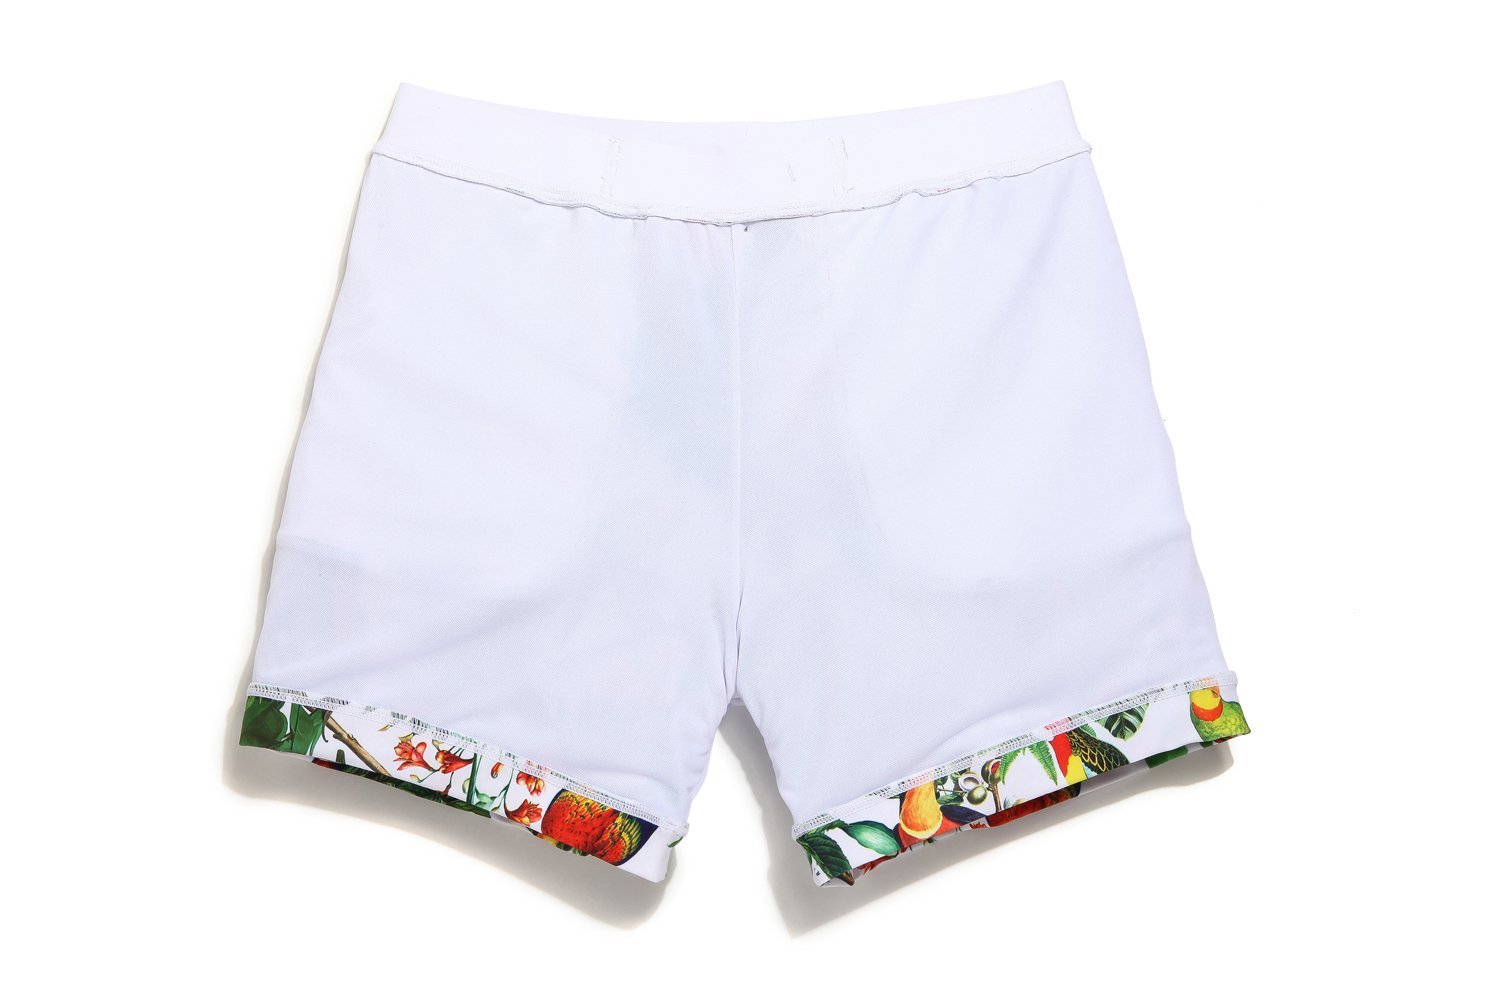 c4c2a83f088c4 Taddlee Men Swimwear Swimsuits Flower Print Surf Board Boxer Shorts Trunks  Long (S,XF83) - 4331232030 < Briefs < Clothing, Shoes & Jewelry - tibs